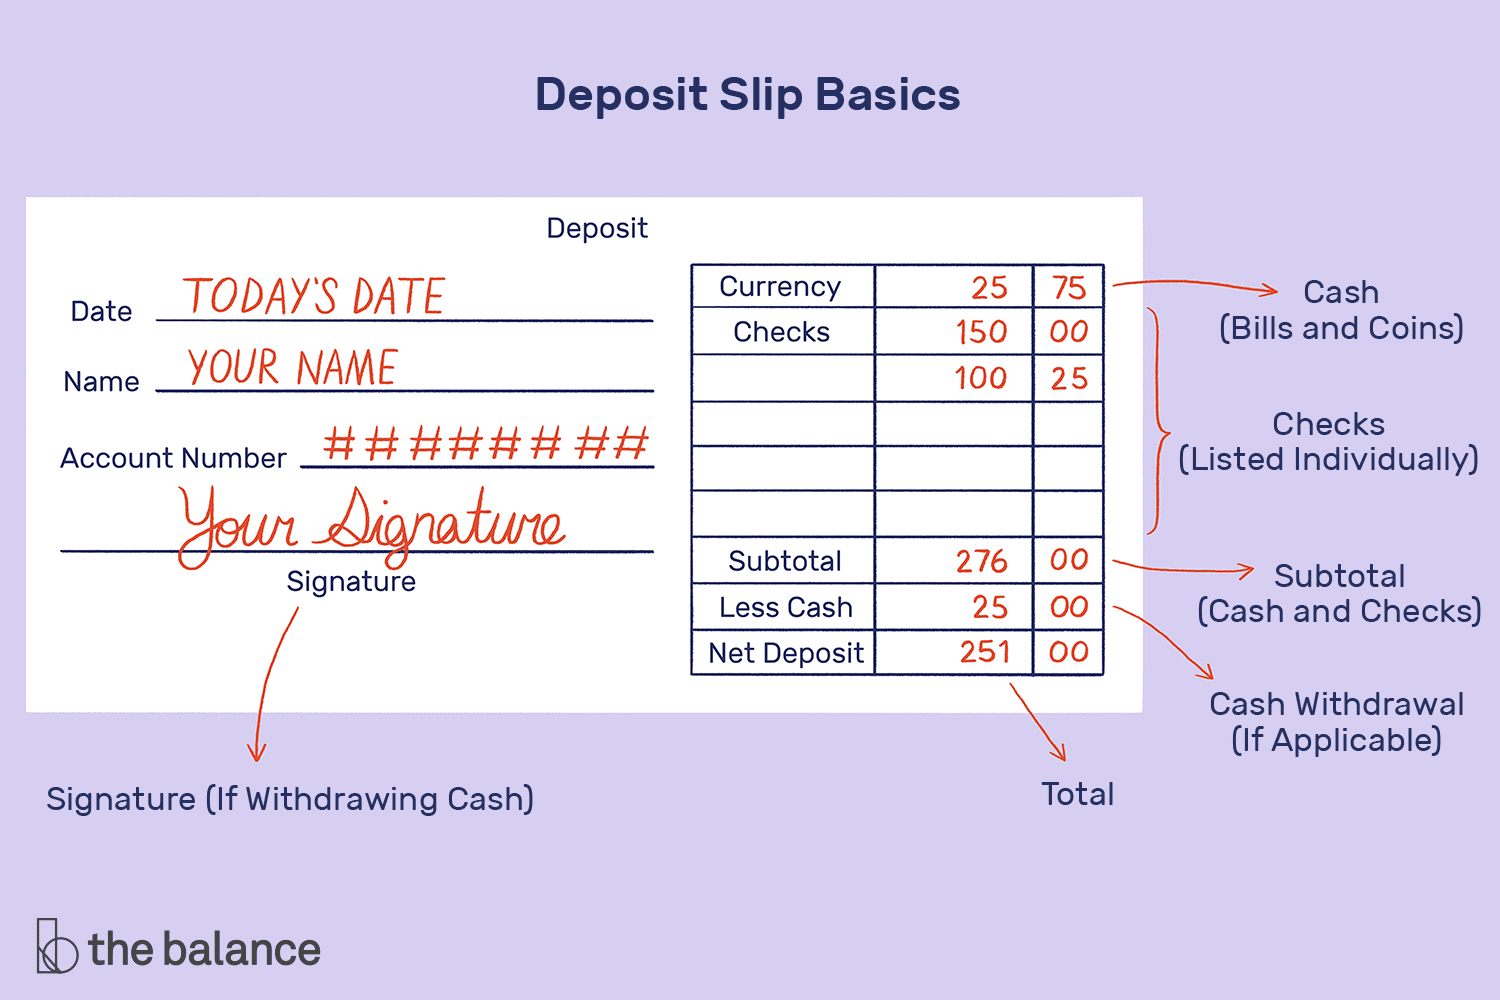 How To Fill Out A Deposit Slip And Deposit Slip Worksheet